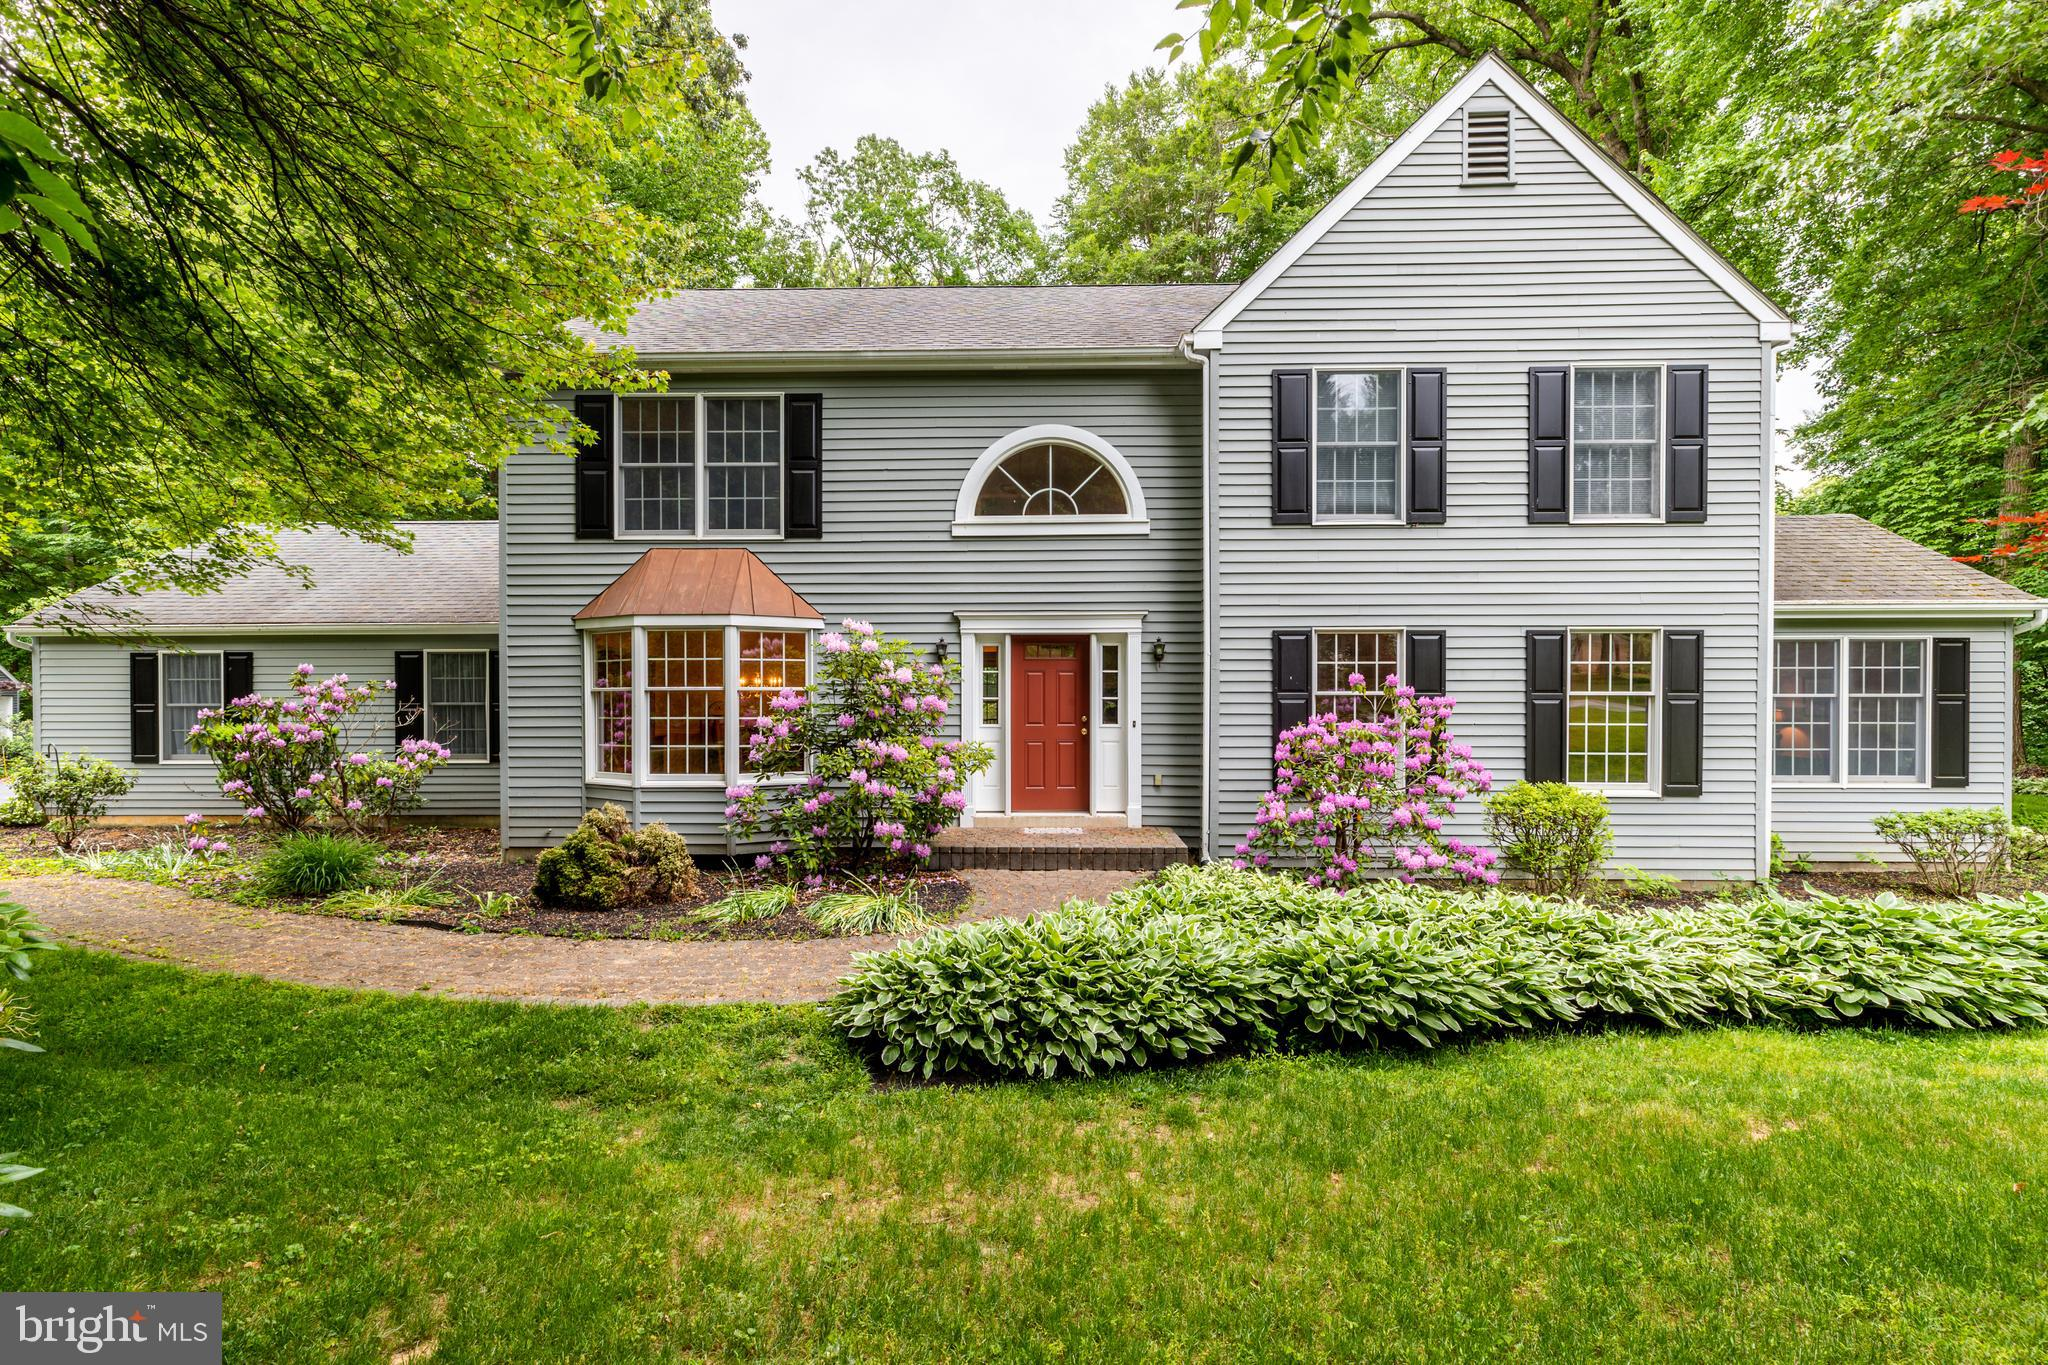 This is the one you have been waiting for!  Situated on a flat, one acre lot near the end of a cul-de-sac in the award-winning West Chester Area School District, this lovely 4 bedroom, 2.5 bath home is sure to please.  Enter the dramatic 2-story foyer where you will notice a stately L-shaped staircase and hardwood floors which flow into the dining room on the left and the living room on the right. The formal dining room is bathed in light from the bay window while the light filled living room boasts a wall of beautiful built-in bookcases.  Continue through the living room where double doors open to a spacious office with multiple windows providing an abundance of natural light. The heart of the home is  outfitted with plenty of cabinetry and a large island, all with granite countertops. The kitchen opens into a cozy family room complete with a stone fireplace and a wet bar. Sliding glass doors in the family room lead to a newer composite deck overlooking a park-like backyard. The laundry/mud room can be accessed from the kitchen, the 2 car garage, as well as the backyard. An upgraded powder room completes the first floor. Head upstairs where you will find three spacious bedrooms with ample closet space, a hall bath with a dual vanity, and the owner's suite. The stairs, hall, and three of the bedrooms feature newer neutral carpeting. The expansive owner's suite, with its vaulted ceiling, is complete with a generous walk-in closet, an additional closet, and an ensuite bath featuring a newly renovated tile shower, new granite vanity top, and mirrors. The basement is partially finished with a built-in bar for additional living or entertaining. This level also features tons of space for storage.  The entire exterior of the home was painted in 2016. As an added bonus for dog lovers, the backyard is invisible fence ready. All of this is perfectly located in the very desirable East Bradford Township, just a few minutes from the borough of West Chester with its quaint shops 